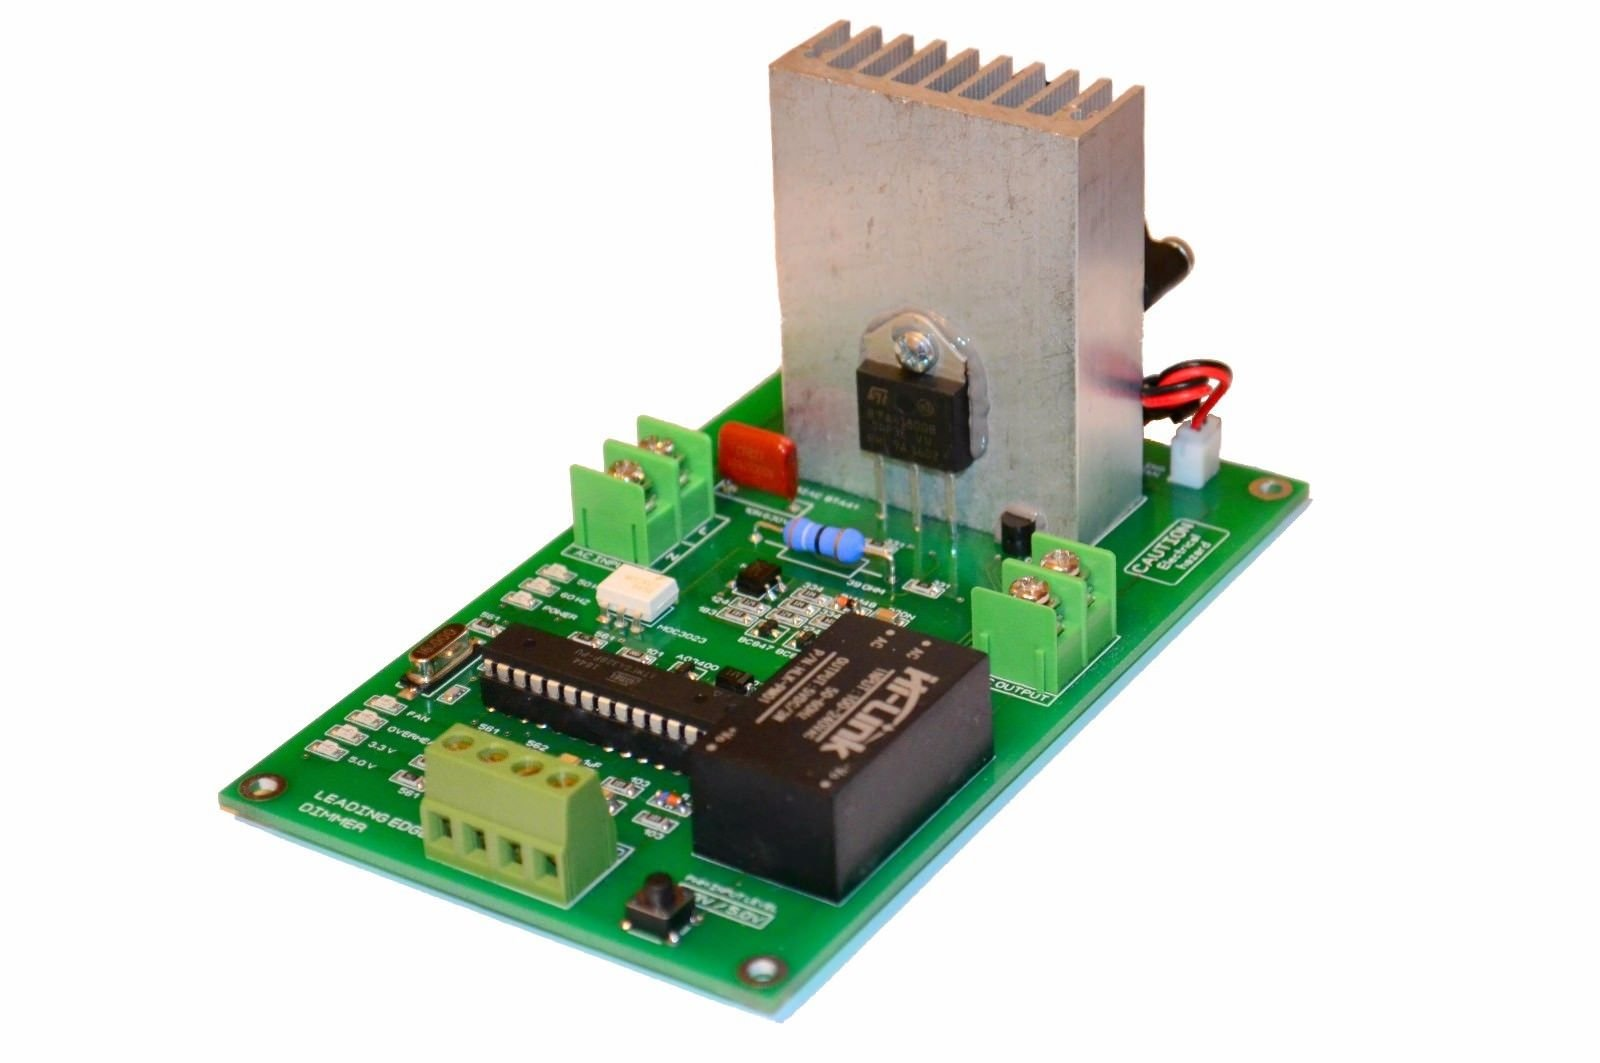 16A PWM 3500W 80V 240V AC Phase Dimmer 50-60HZ High Power Compatible With Arduino, Raspberry